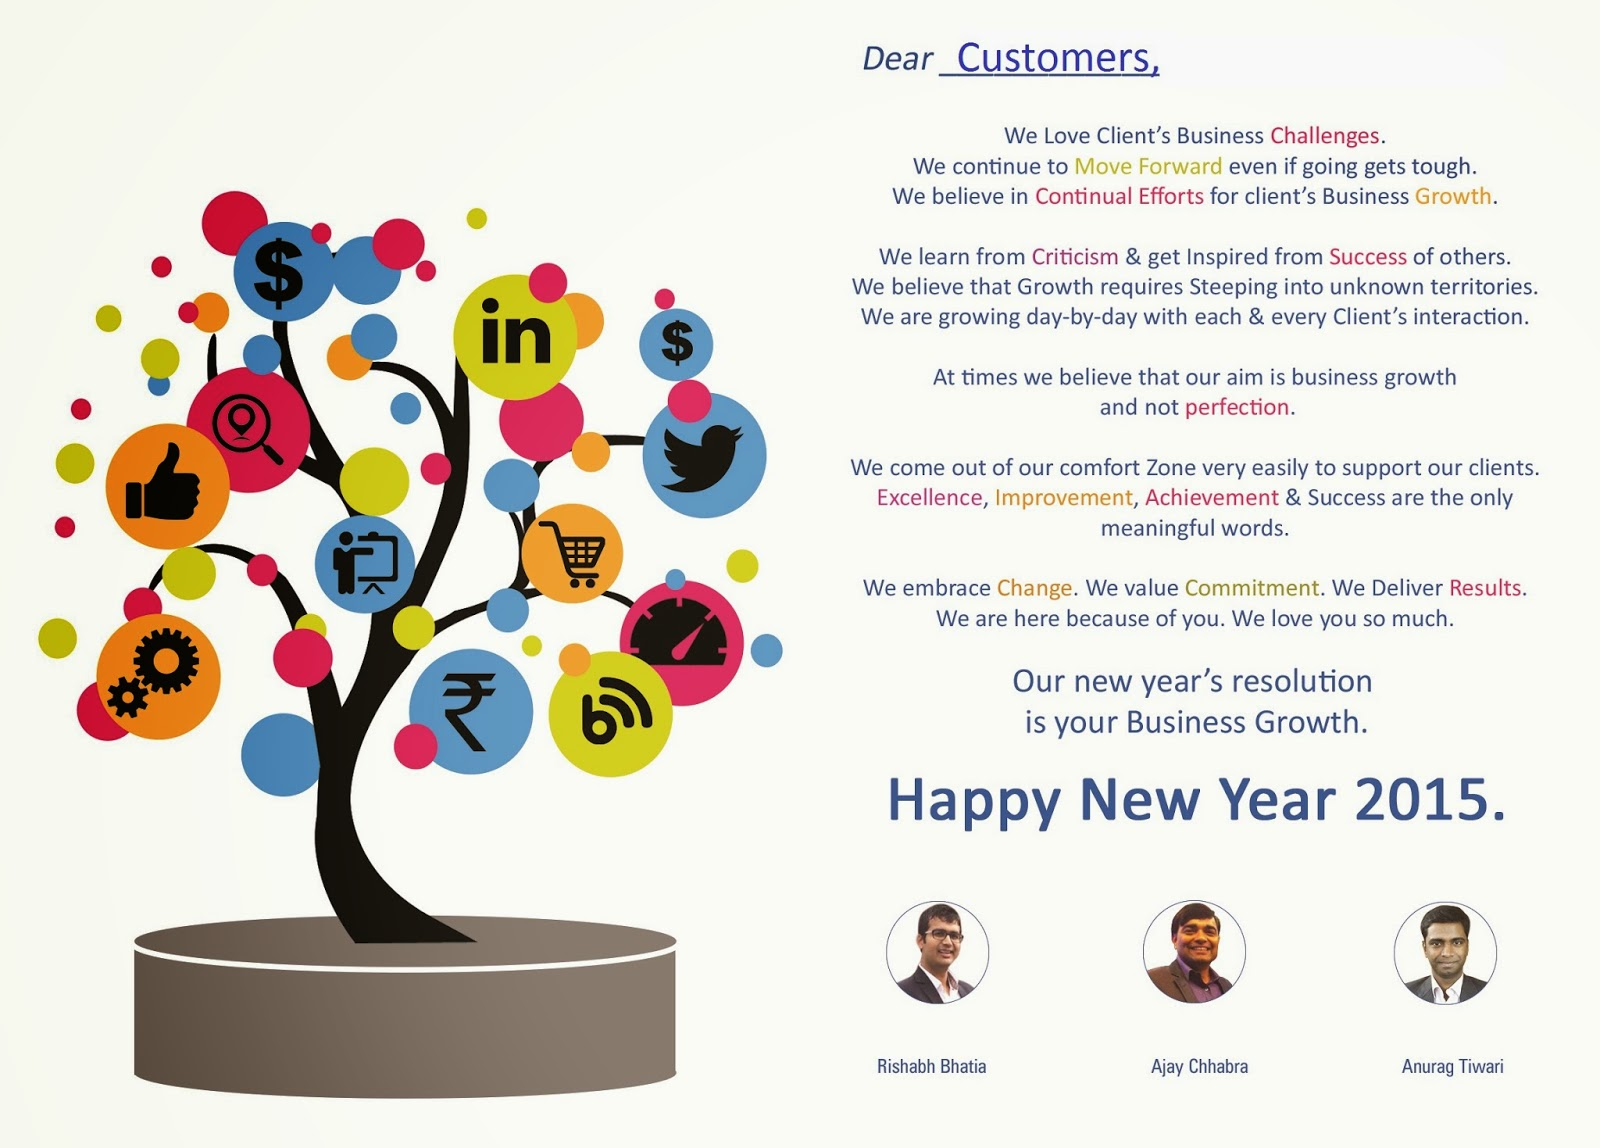 new year 2015 resolution from a3r digital pvt ltd